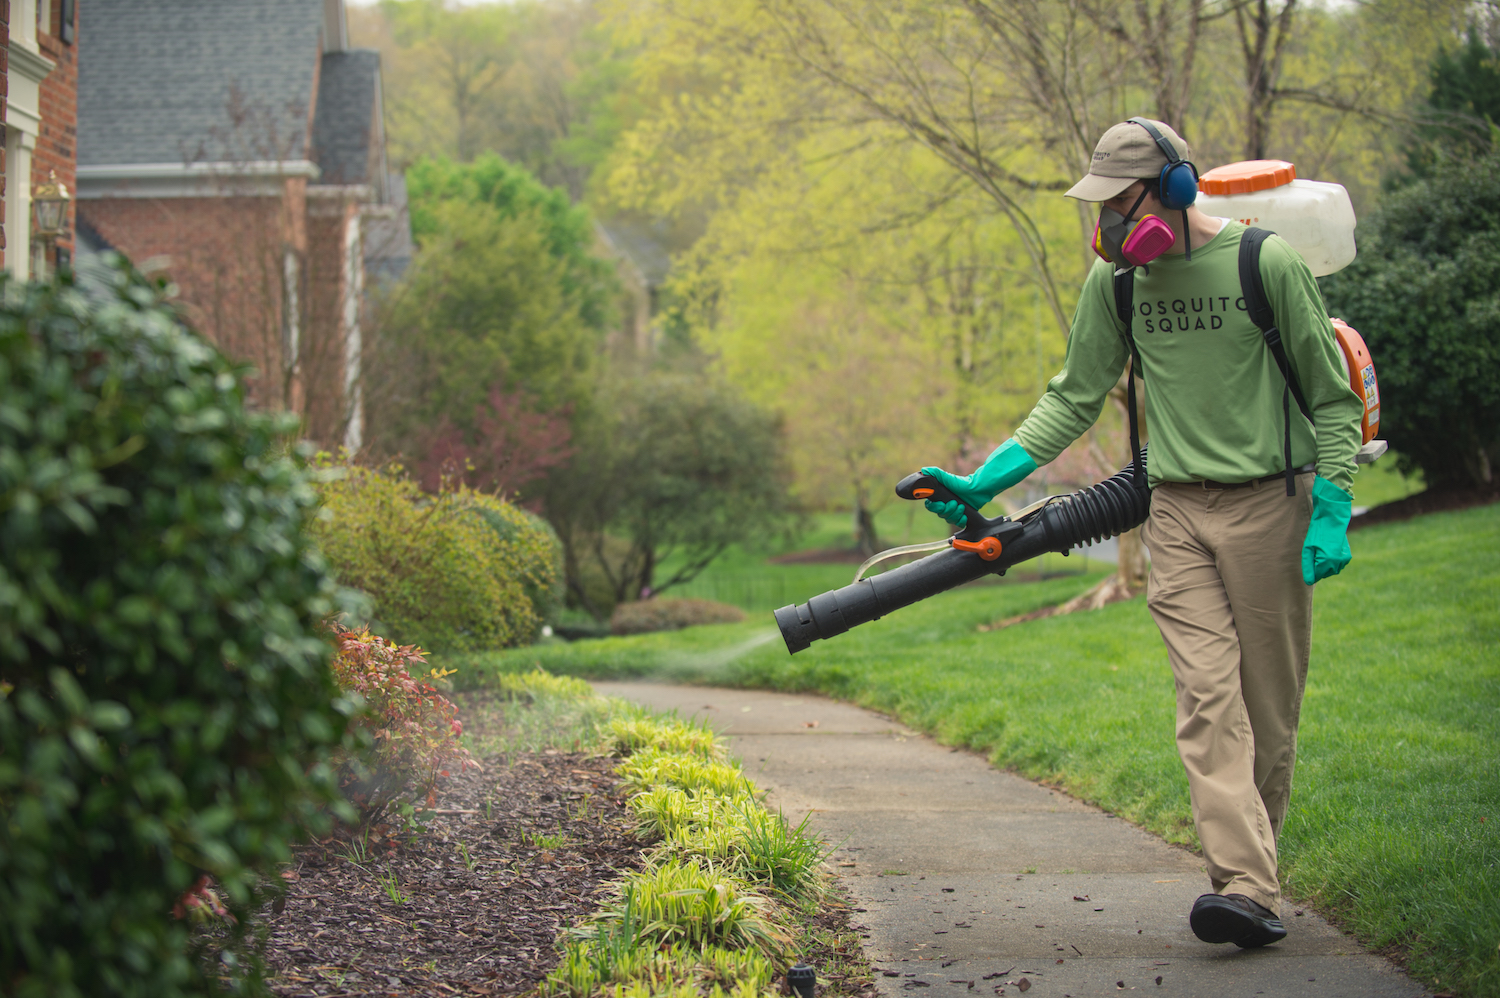 Mosquito Squad employee spraying to get rid of mosquitoes